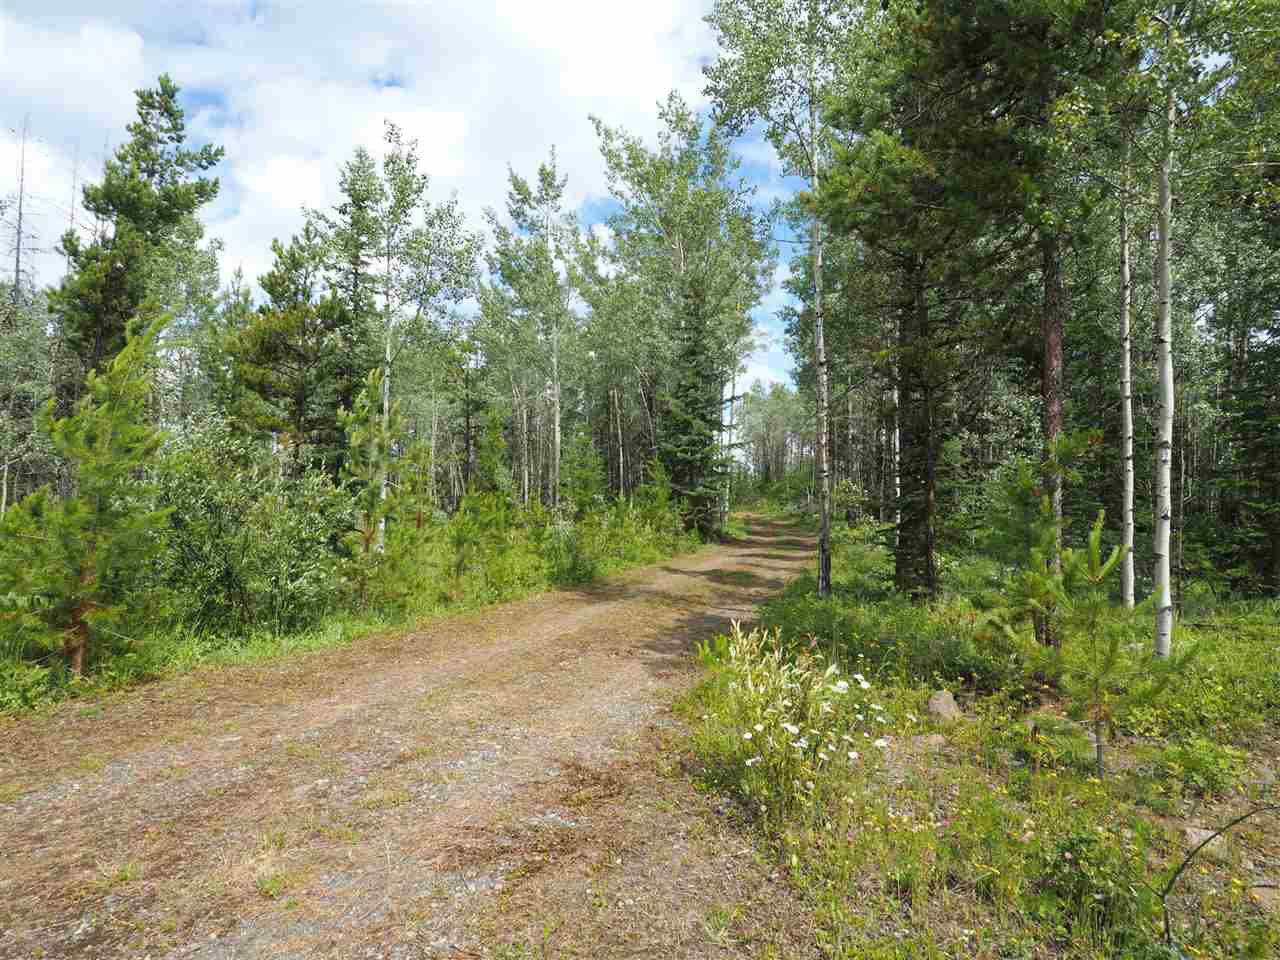 Photo 2: Photos: 5532 LITTLE FORT 24 Highway in Lone Butte: Lone Butte/Green Lk/Watch Lk Land for sale (100 Mile House (Zone 10))  : MLS®# R2419528